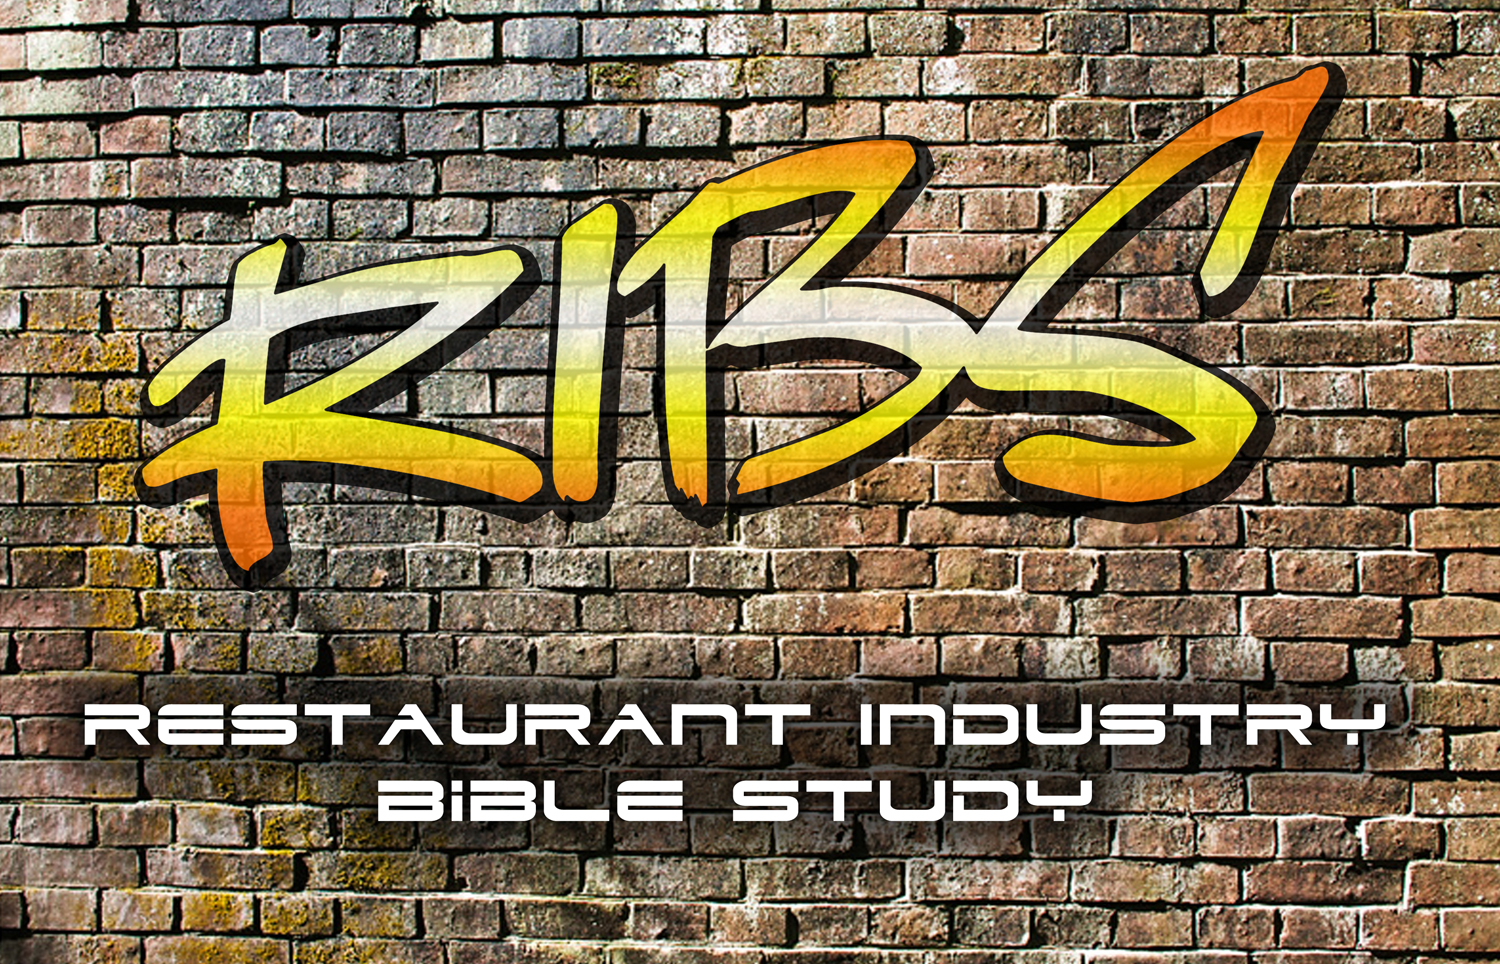 Restaurant Industry Bible Study